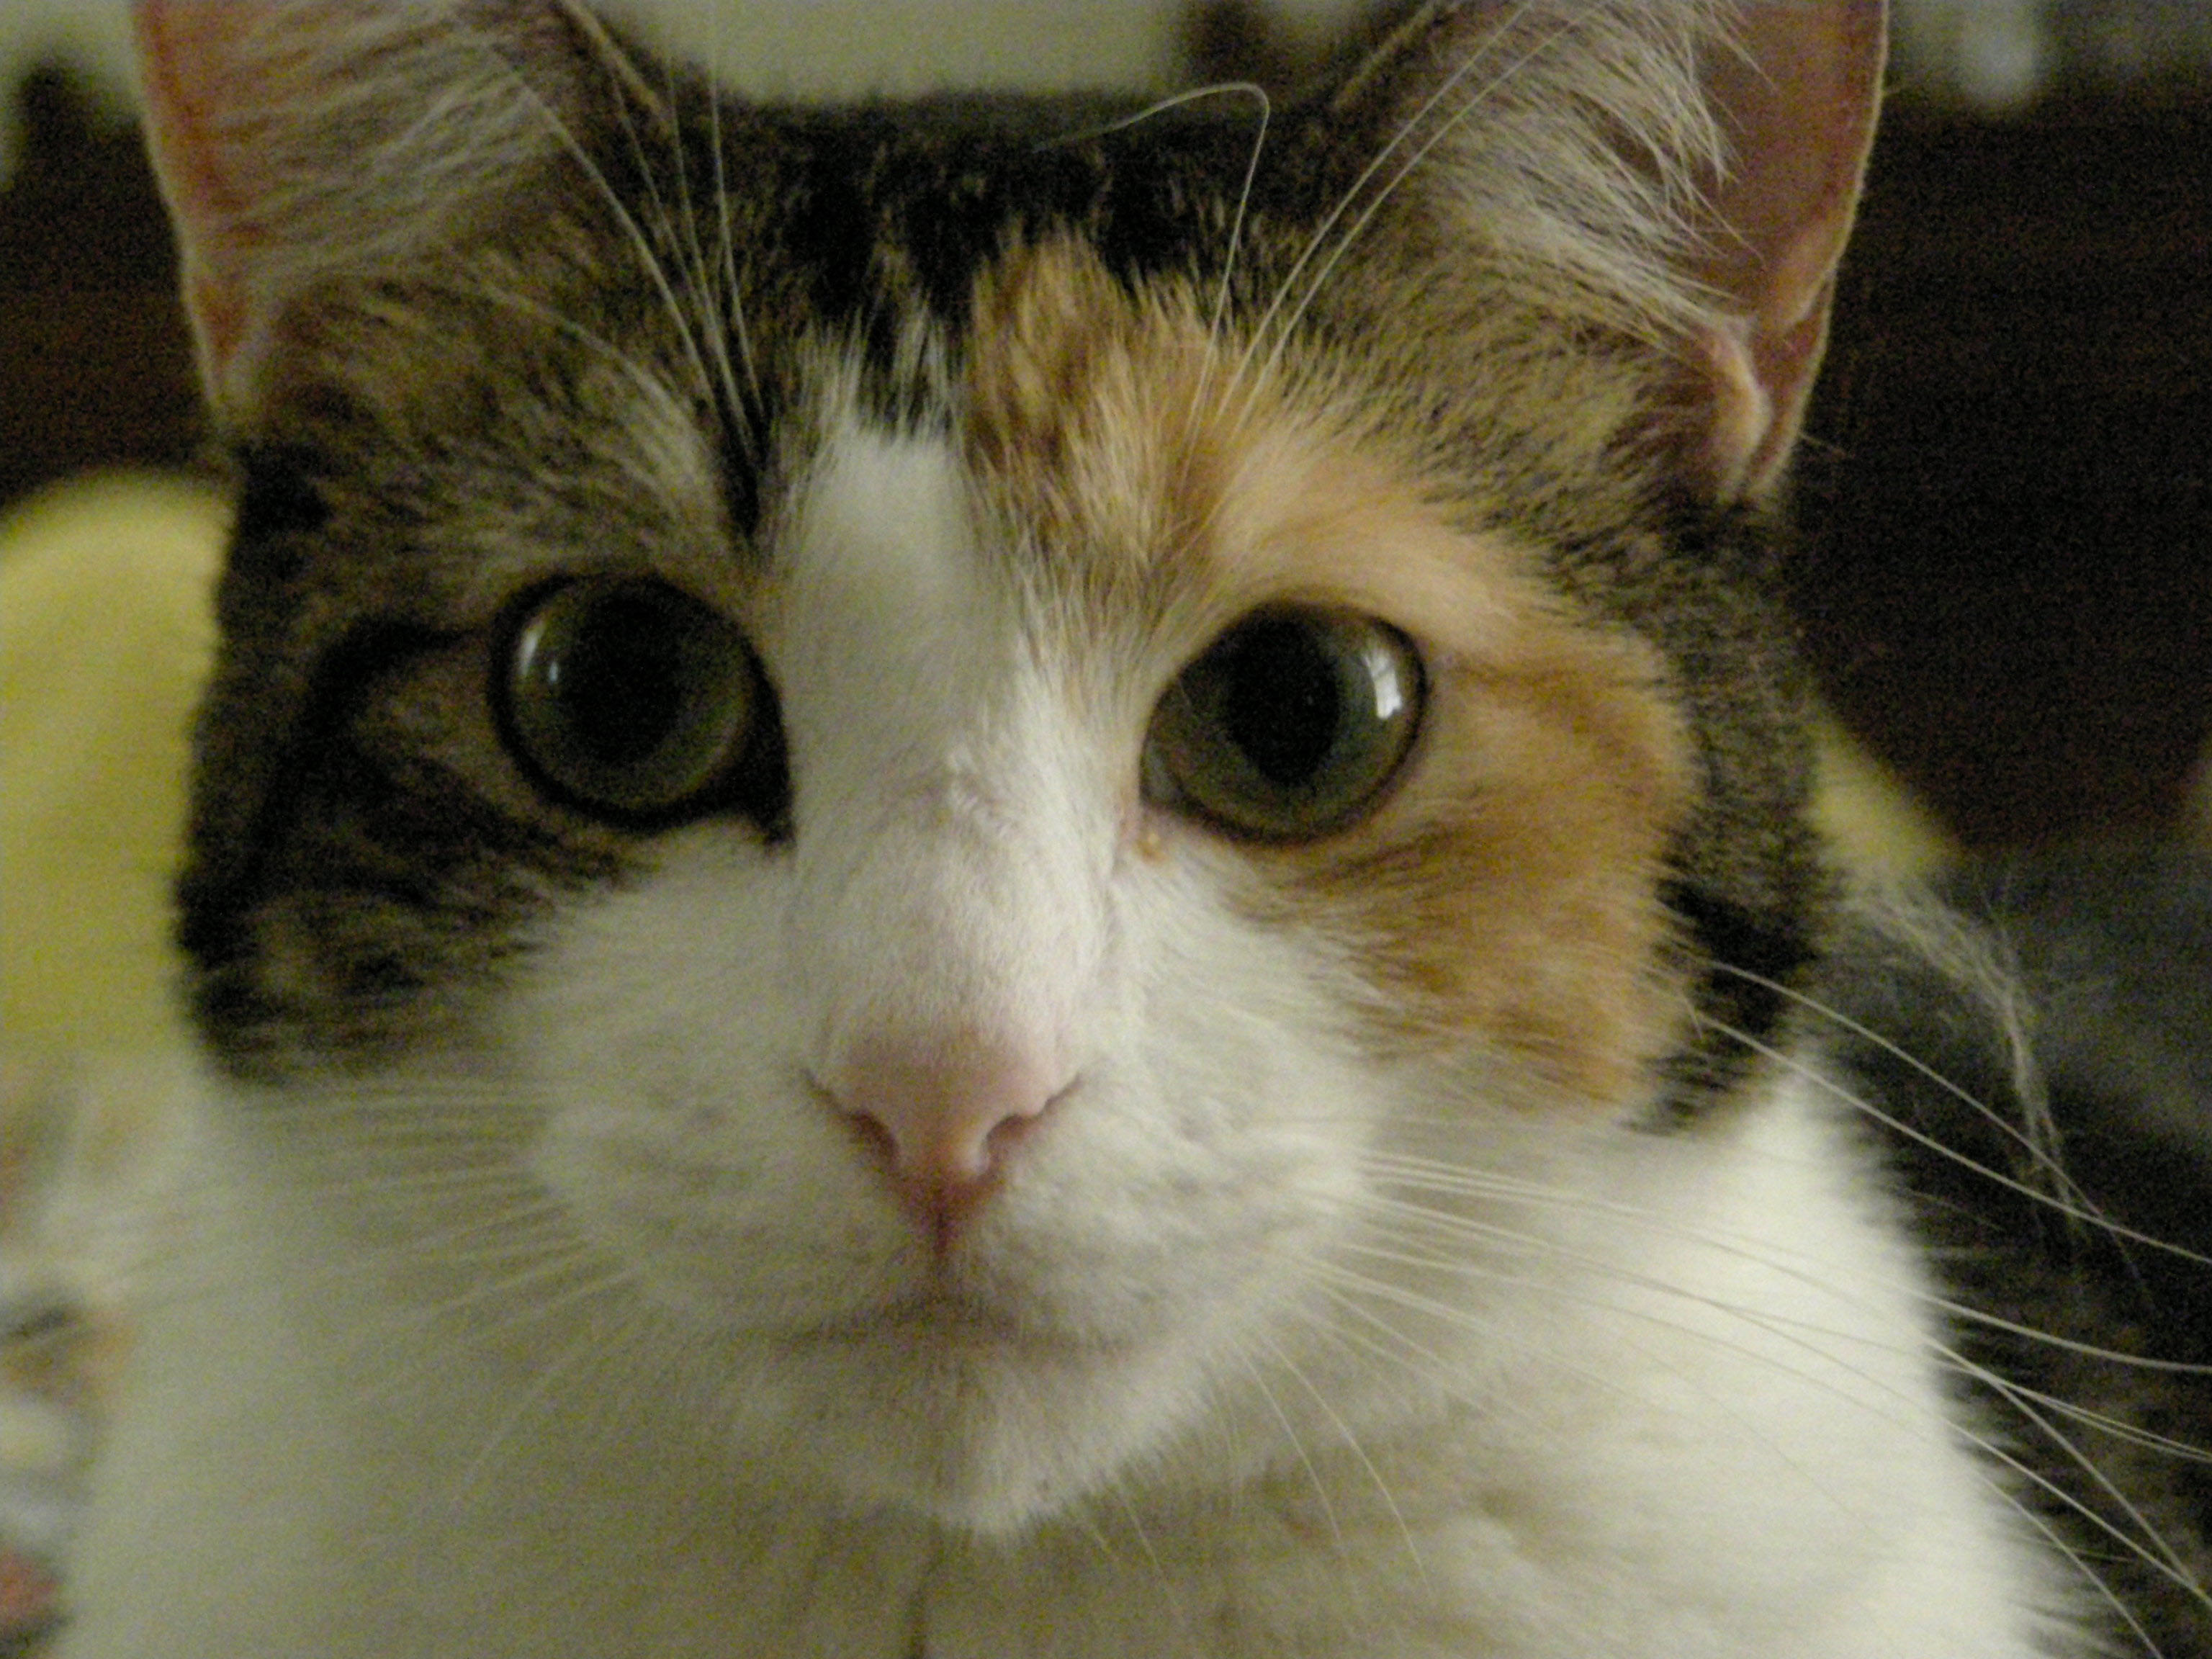 Mixed Breed Calico & Tortoiseshell Cat Picture 6491